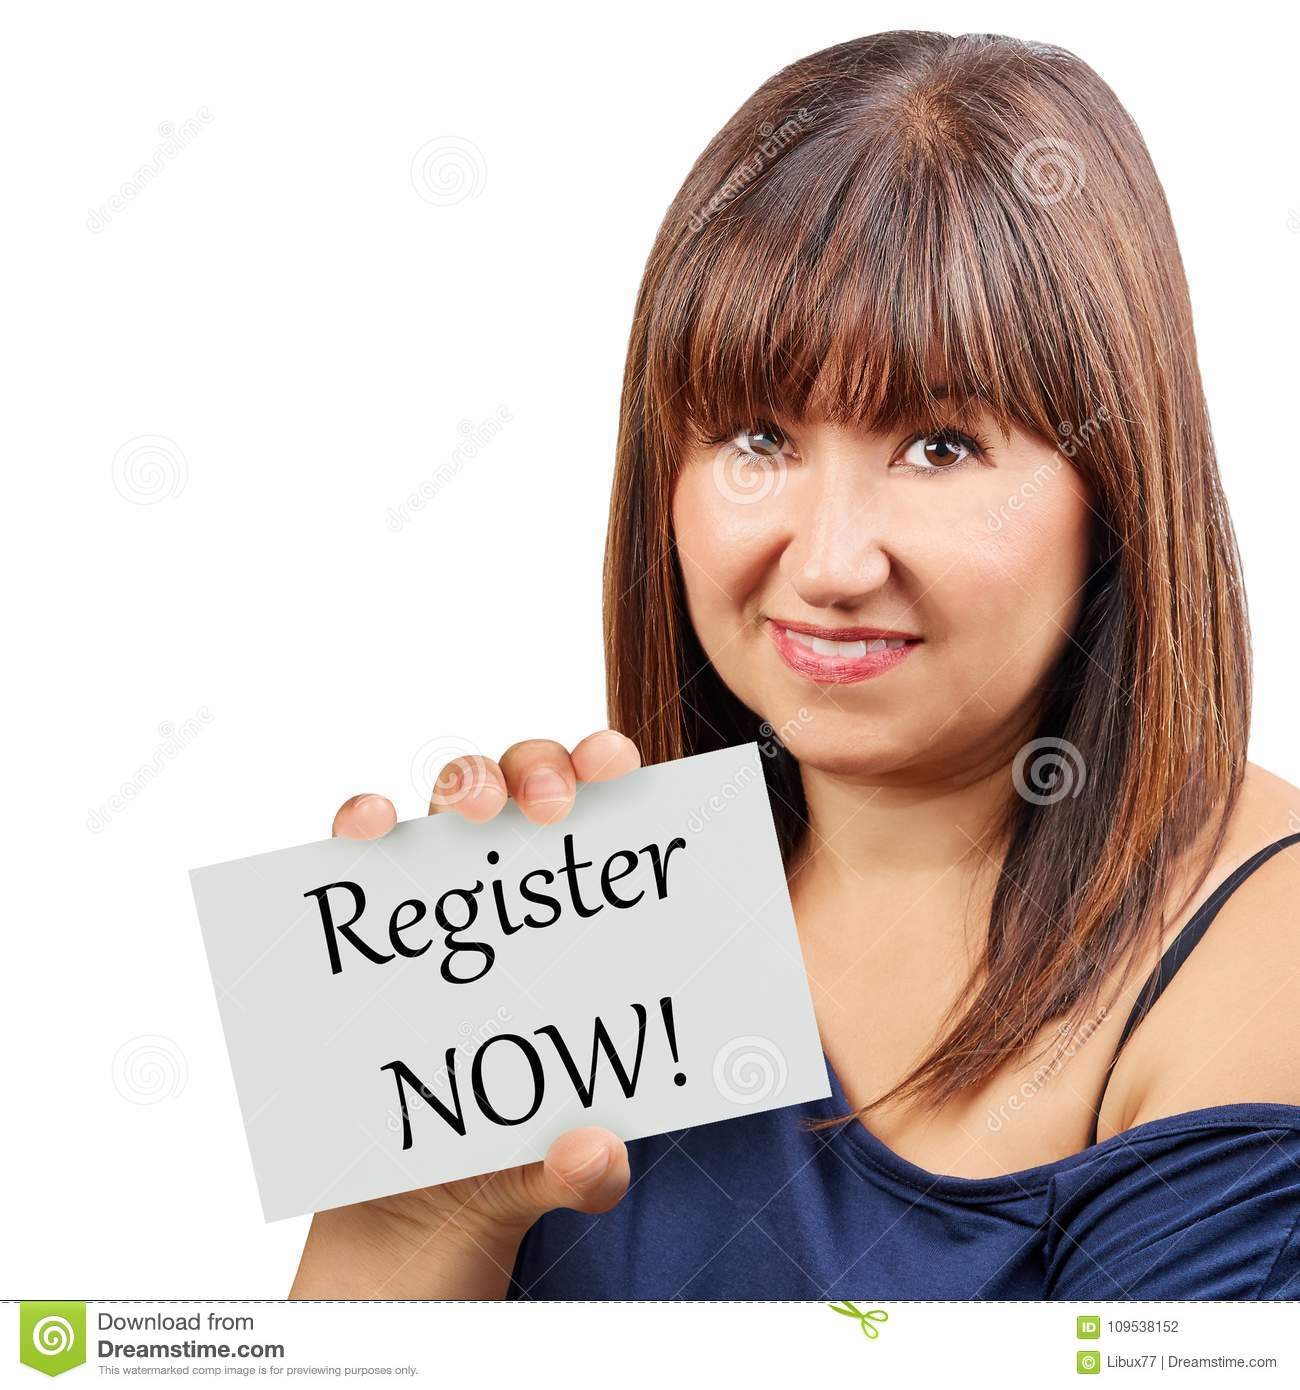 Register now card held by brunette woman isolated